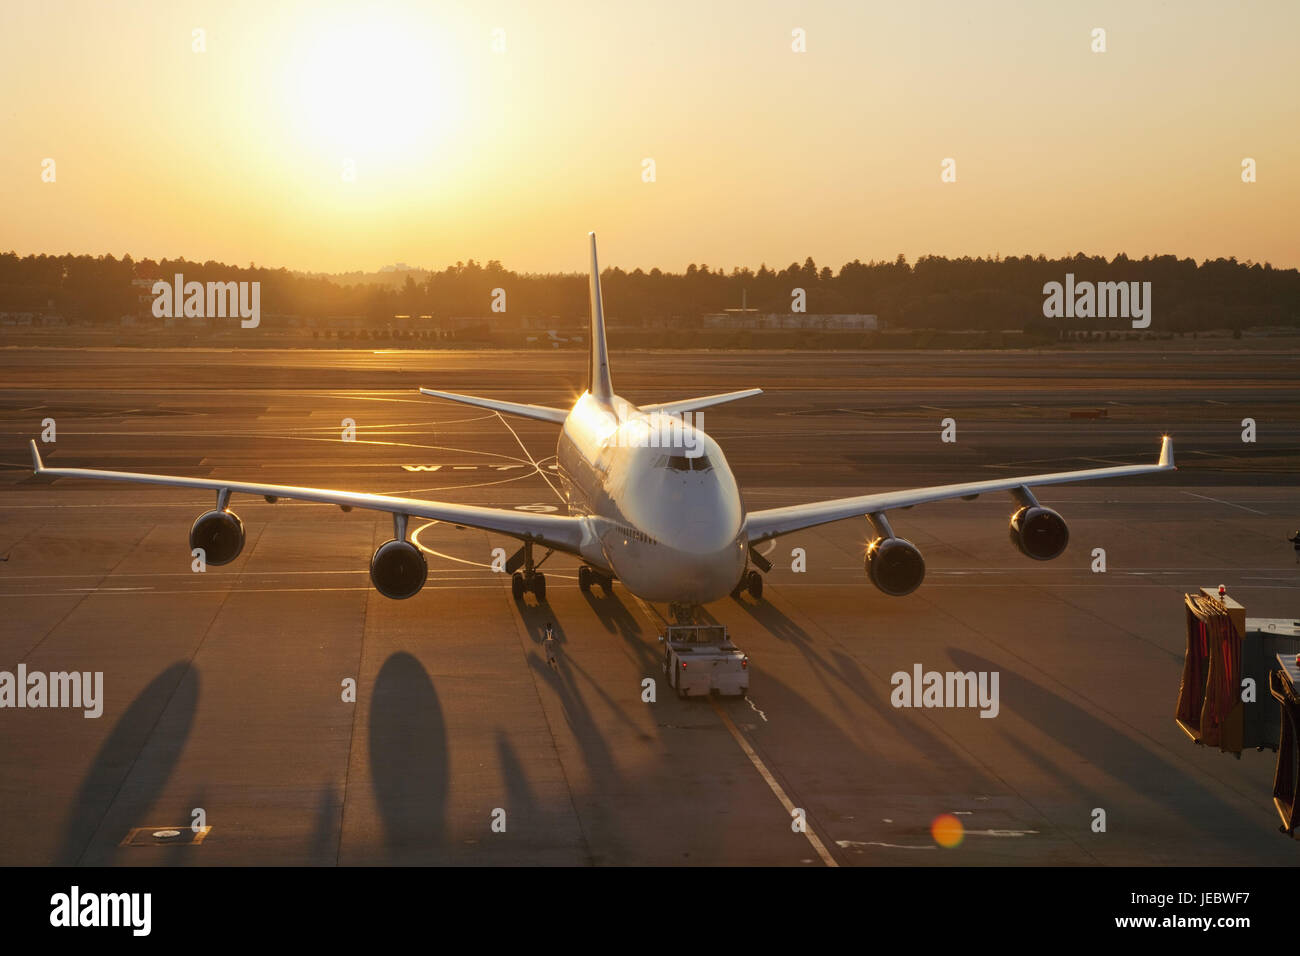 Japan, Tokyo, Narita Internationally airport, landing field, airplane, evening light, airport, outside, travel, - Stock Image